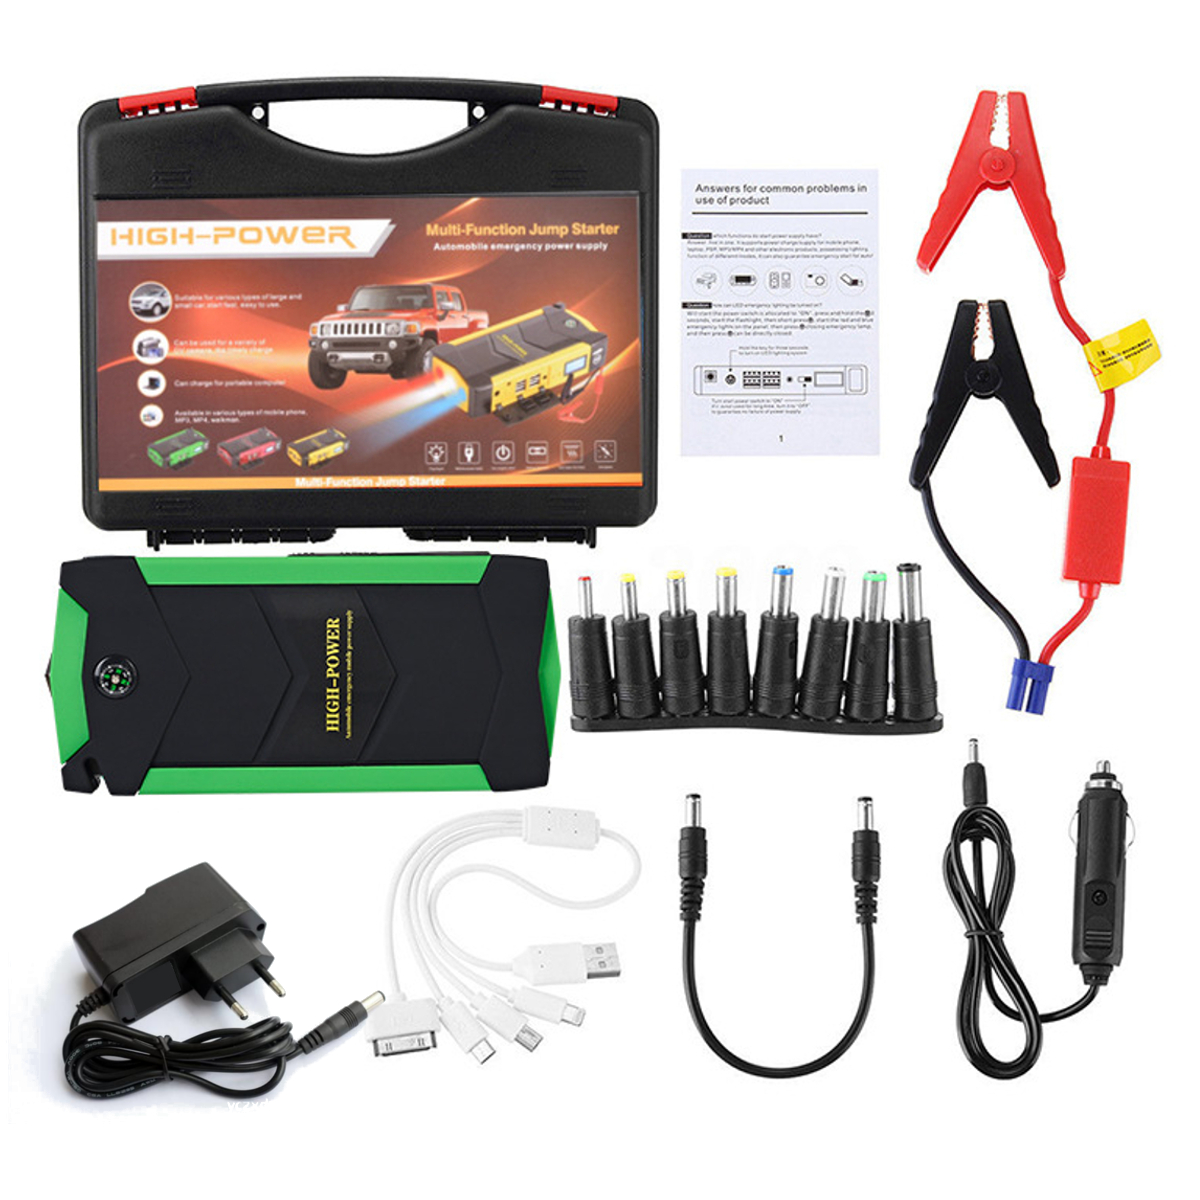 Car Battery Jump Starter 12V 82800mAh 4 USB Portable Charger Booster LED Emergency Multifunction Power Bank Kit for Car dual usb output universal thunder power bank portable external battery emergency charger 13000mah yb651 yoobao for electronics